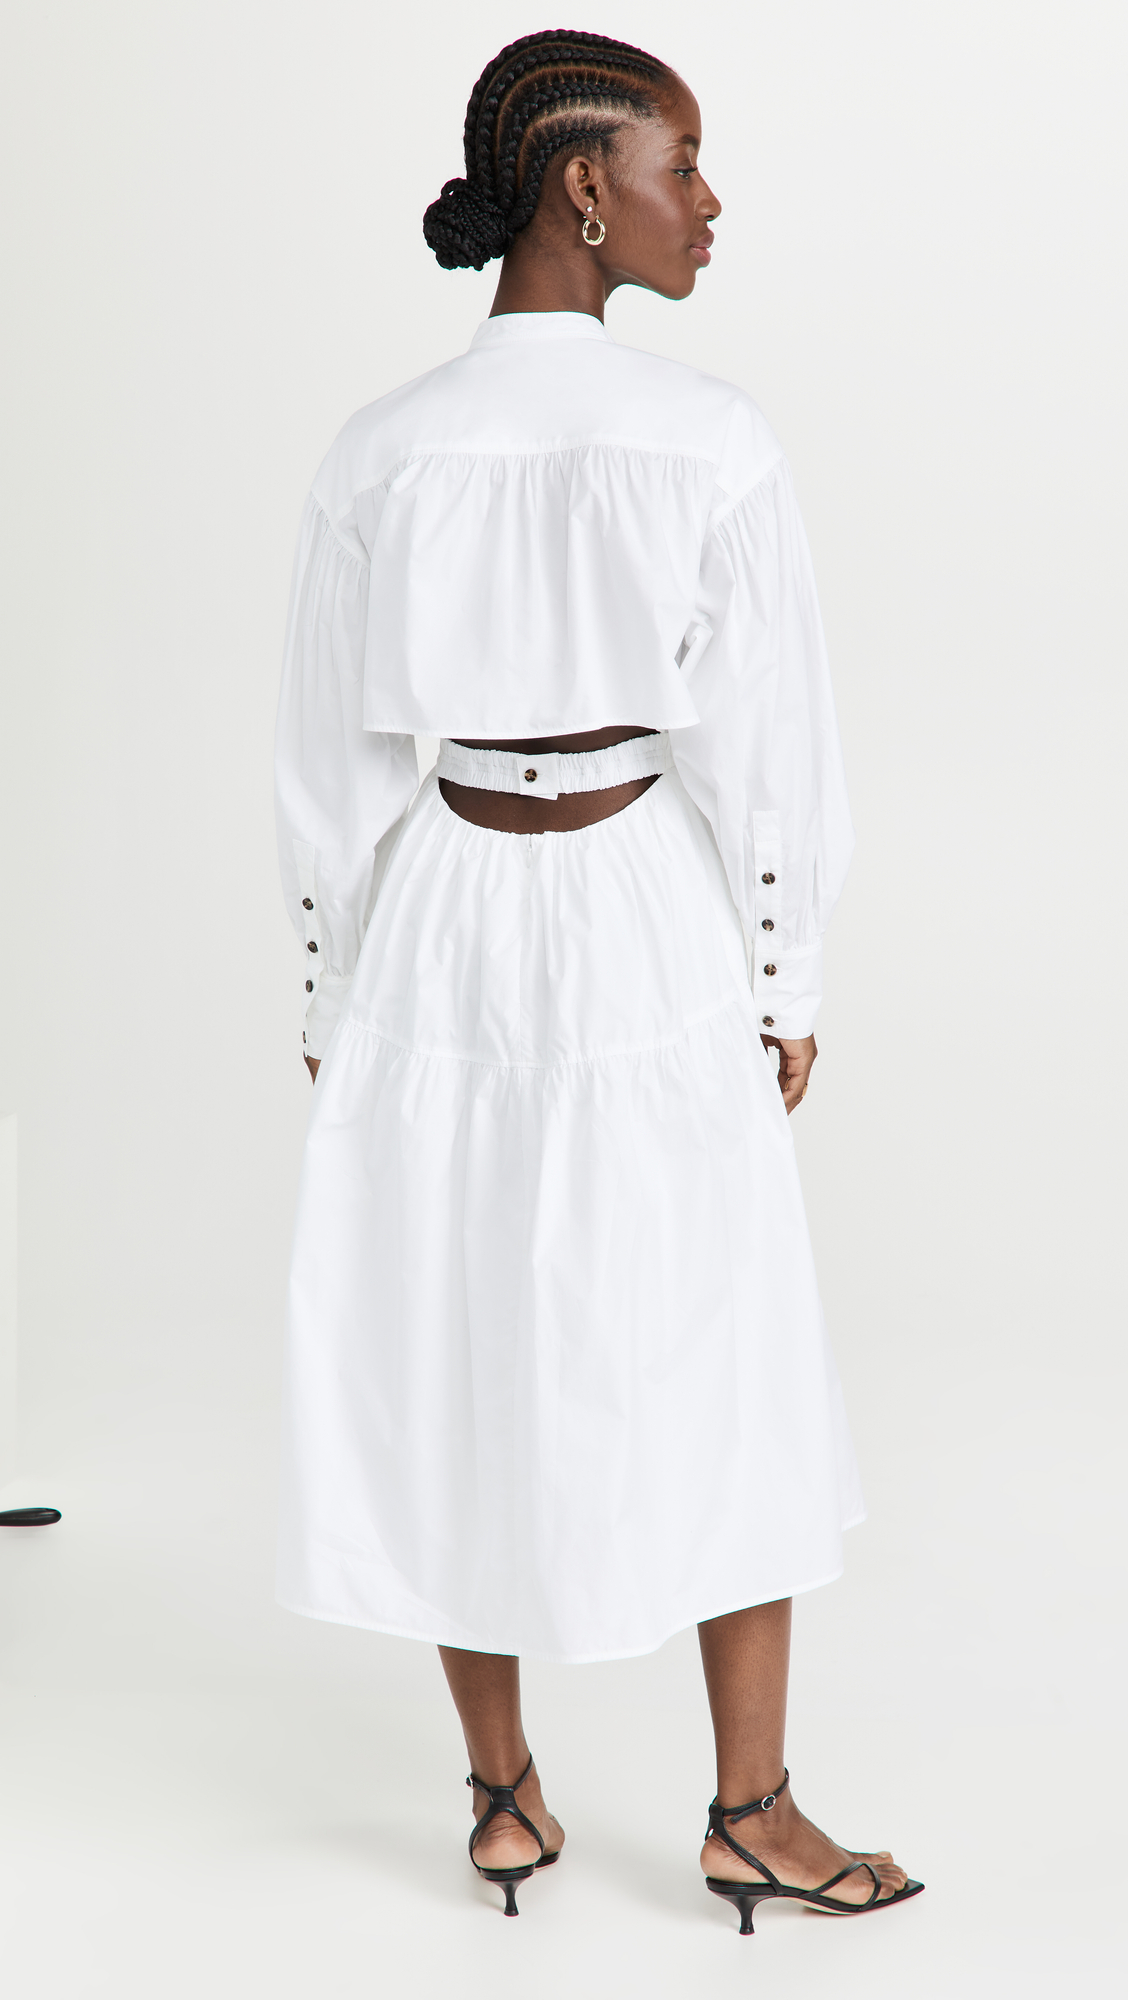 white backless dress with overshirt